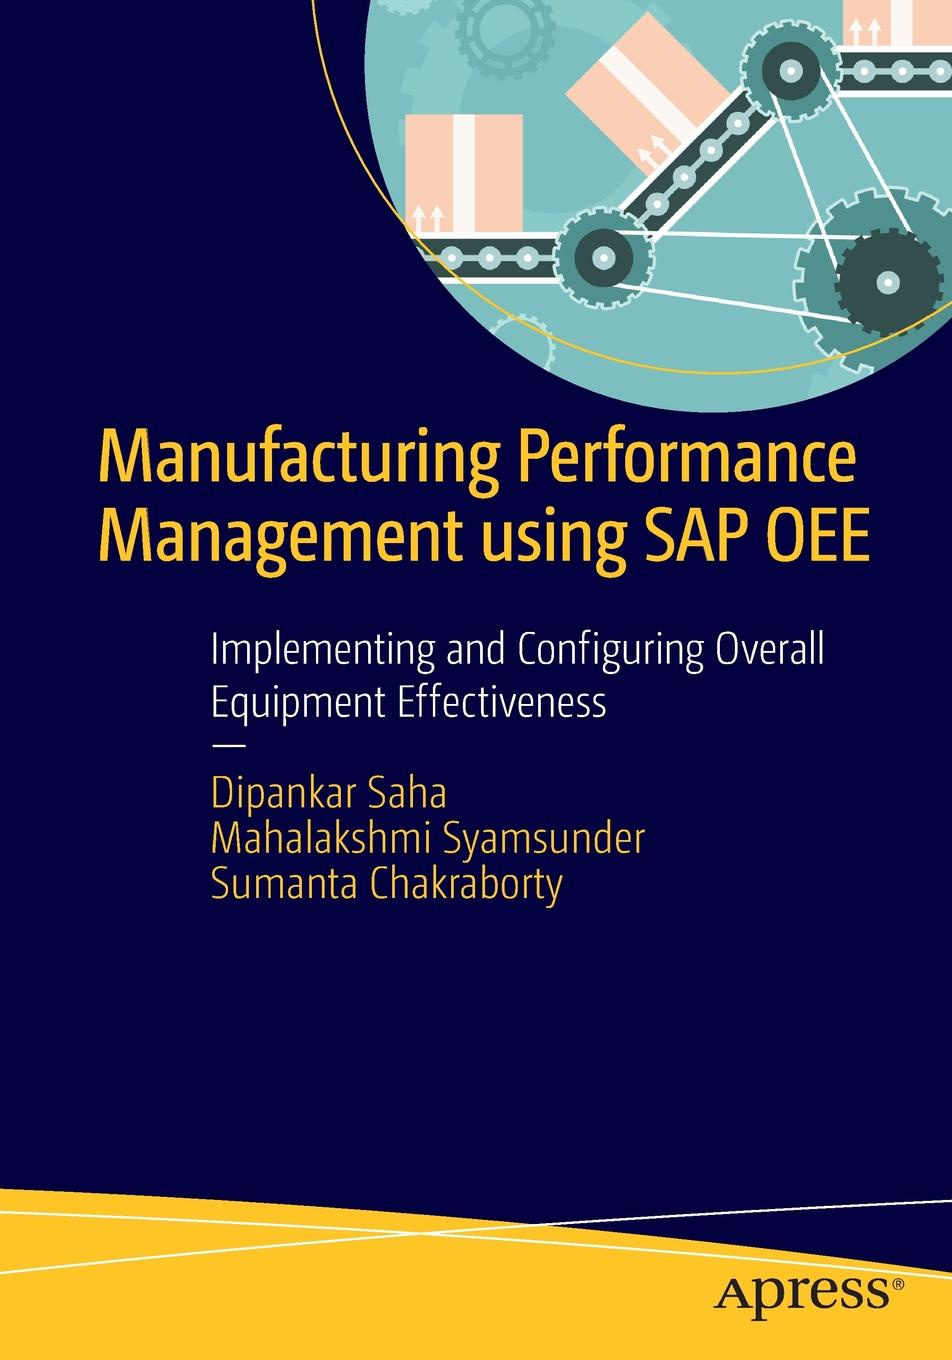 Фото - Dipankar Saha, Mahalakshmi Syamsunder, Sumanta Chakraborty Manufacturing Performance Management using SAP OEE. Implementing and Configuring Overall Equipment Effectiveness kapil sharma configuring sap erp sales and distribution